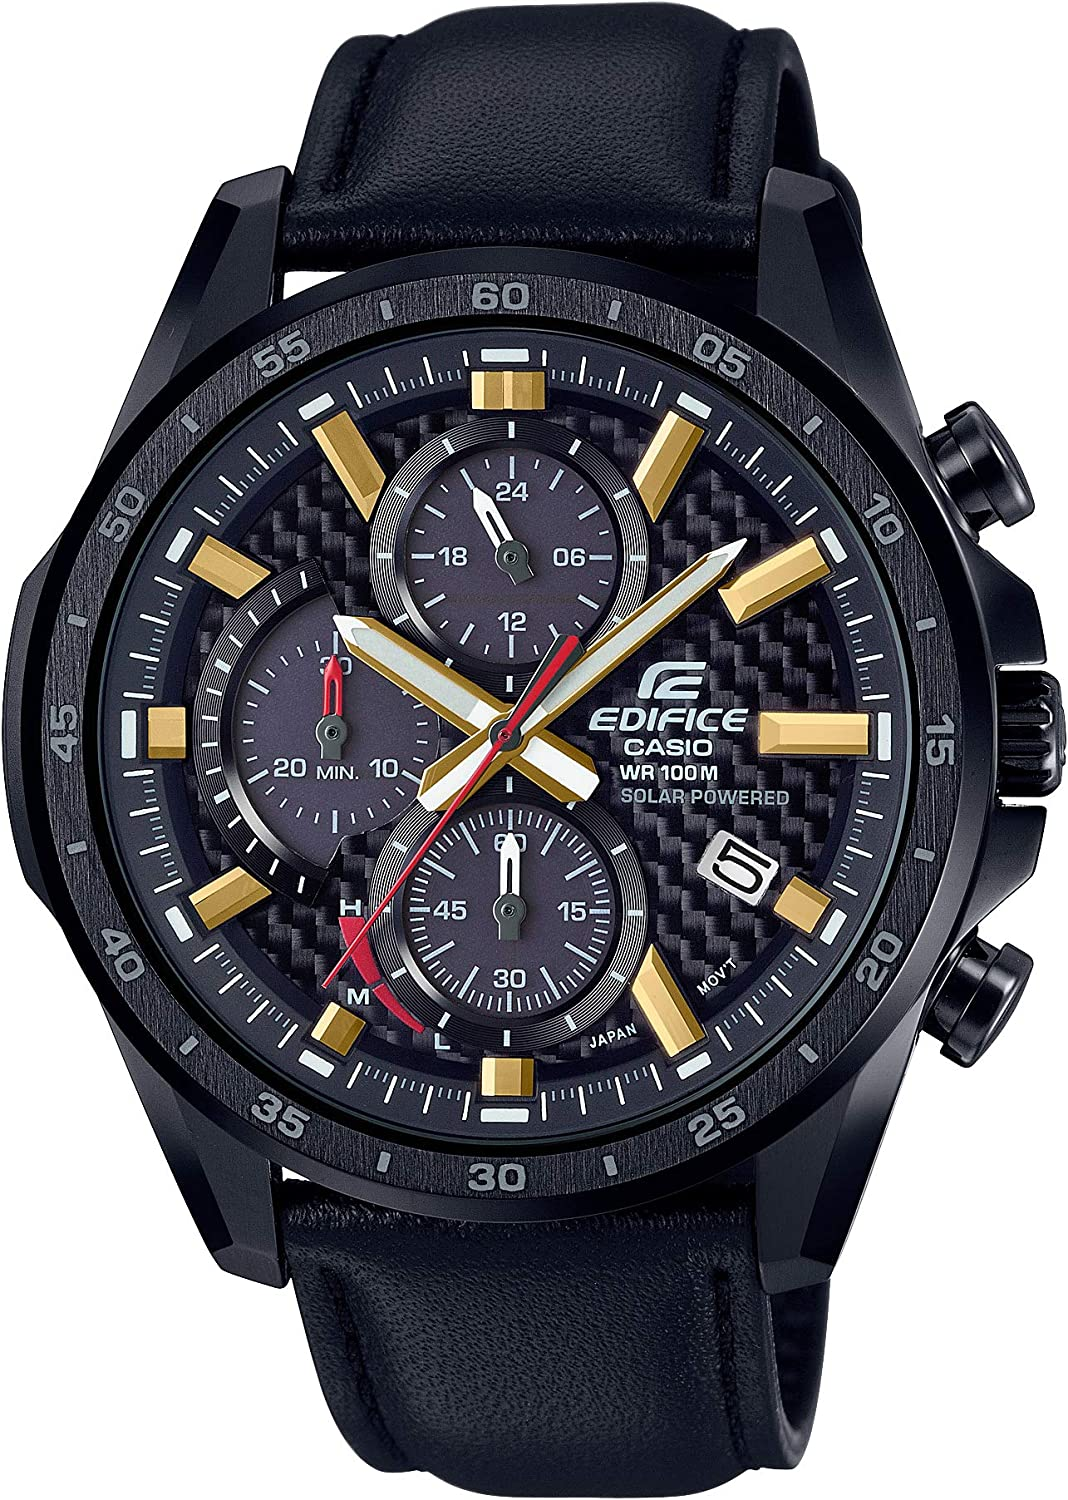 Casio Men s Edifice Stainless Steel Quartz Watch with Leather Strap, Black, 22 Model EQS-900CL-1AVCR